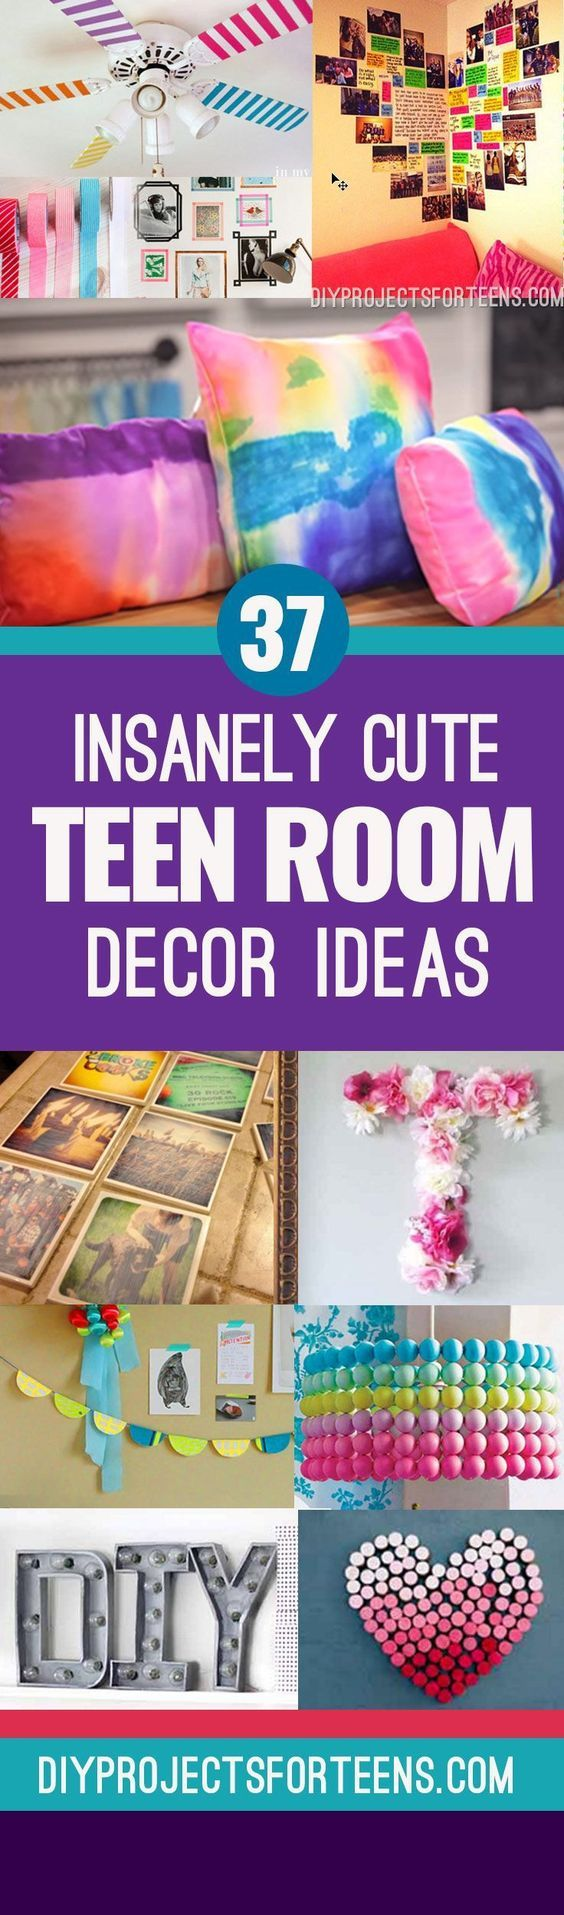 """Cute DIY Room Decor Ideas for Teens – Best DIY Room Decor Ideas from Pinterest, Youtube and Top DIY Blogs. Awesome Ideas for Teen Girls Bedrooms, Furniture Accessories and Wall Art for Tweens and Teenagers. Need cool bedroom decor ideas for teens? Fun step by step DIY projects with tutorials for creative handmade bedding & … Continue reading """"37 Insanely Cute Teen Bedroom Ideas for DIY Decor"""""""